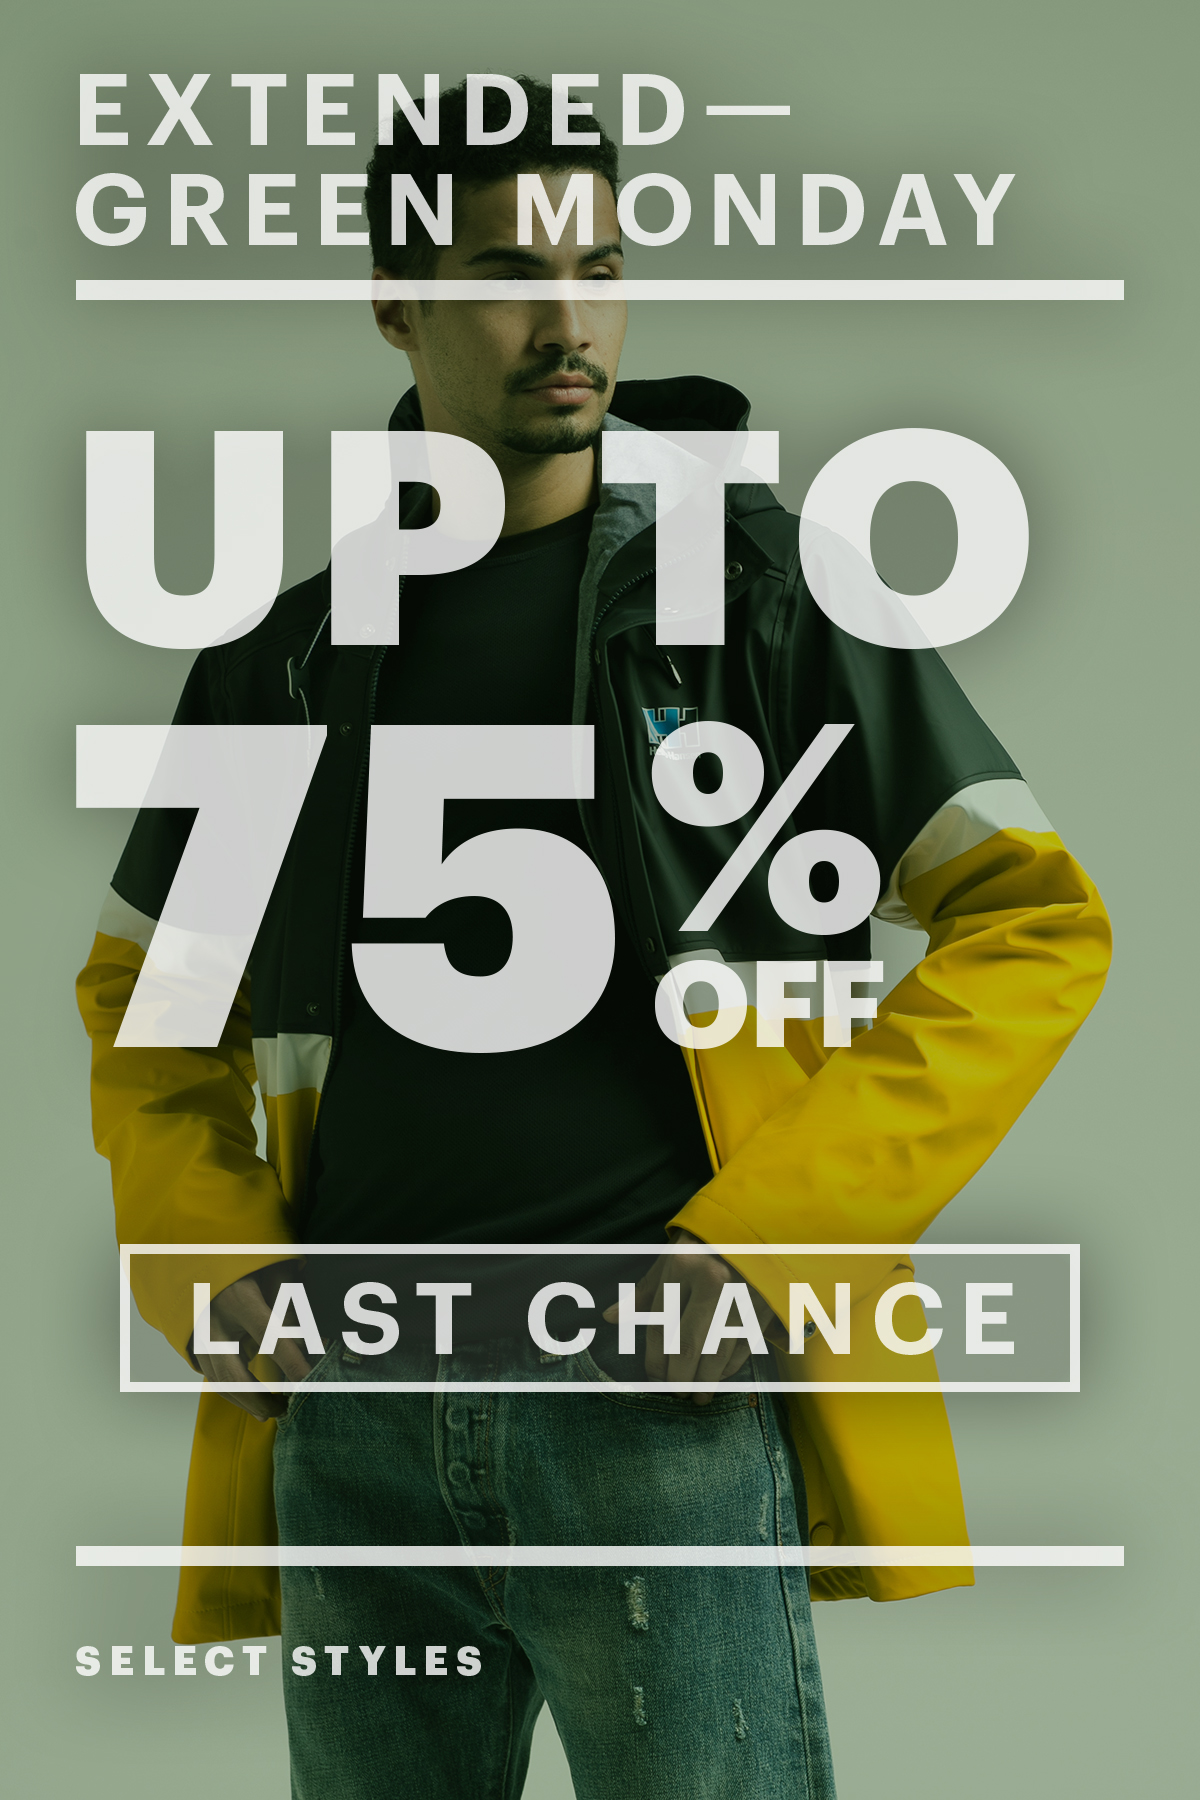 Last Chance! Up To 75% Off! Green Monday Sale